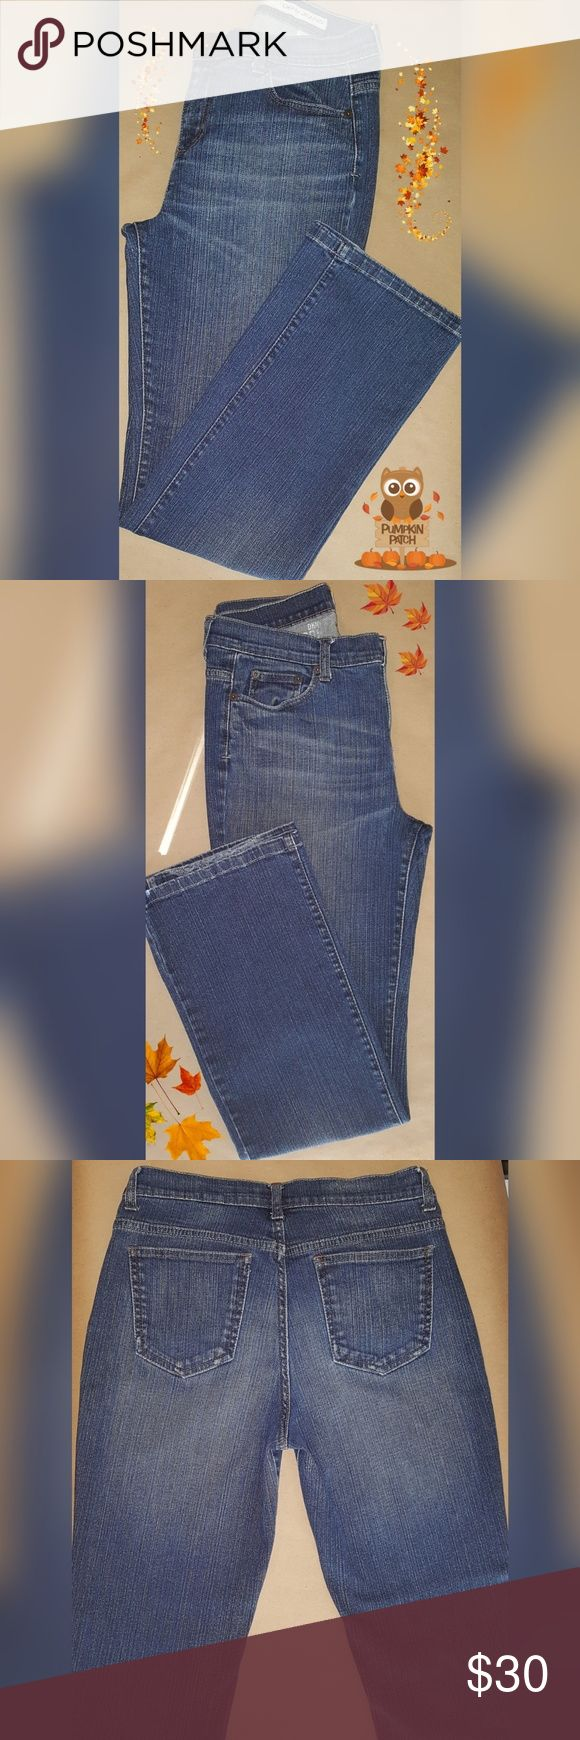 ✳ dkny jeans in euc! ✳dkny jeans in euc!!! ✳slight fraying at the back of cuffs, please see picture #5 ✳soho style kcmu7591 ✳99% cotton  1% spandex ✳approximate measurements are ~ waist 33.5in, rise 10in, inseam 30.5, outseam 40.5in and leg opening 9in    🚫no trades🚫no holds🚫 🙋offers gladly considered if  given through the offer button🙋 OR  💞bundle your likes - I'LL send YOU a SPECIAL DISCOUNTED OFFER!💞 Dkny Jeans